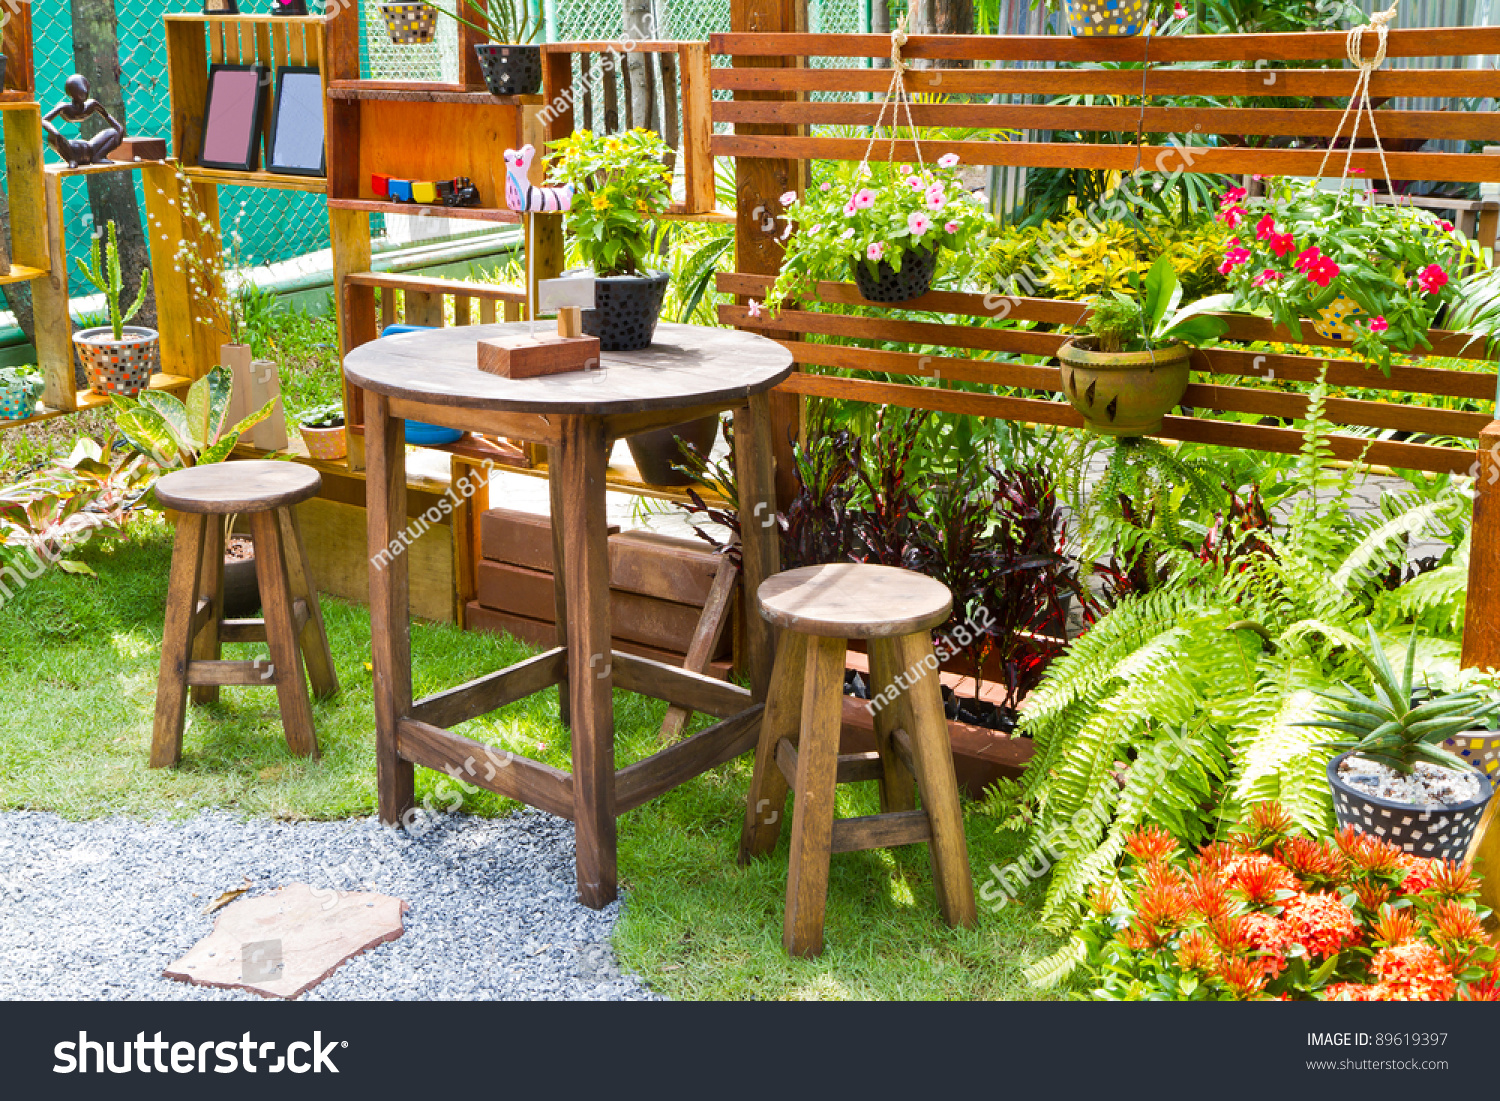 Beautiful garden flower wooden table chairs stock photo edit now beautiful garden with flower and wooden table and chairs home decoration izmirmasajfo